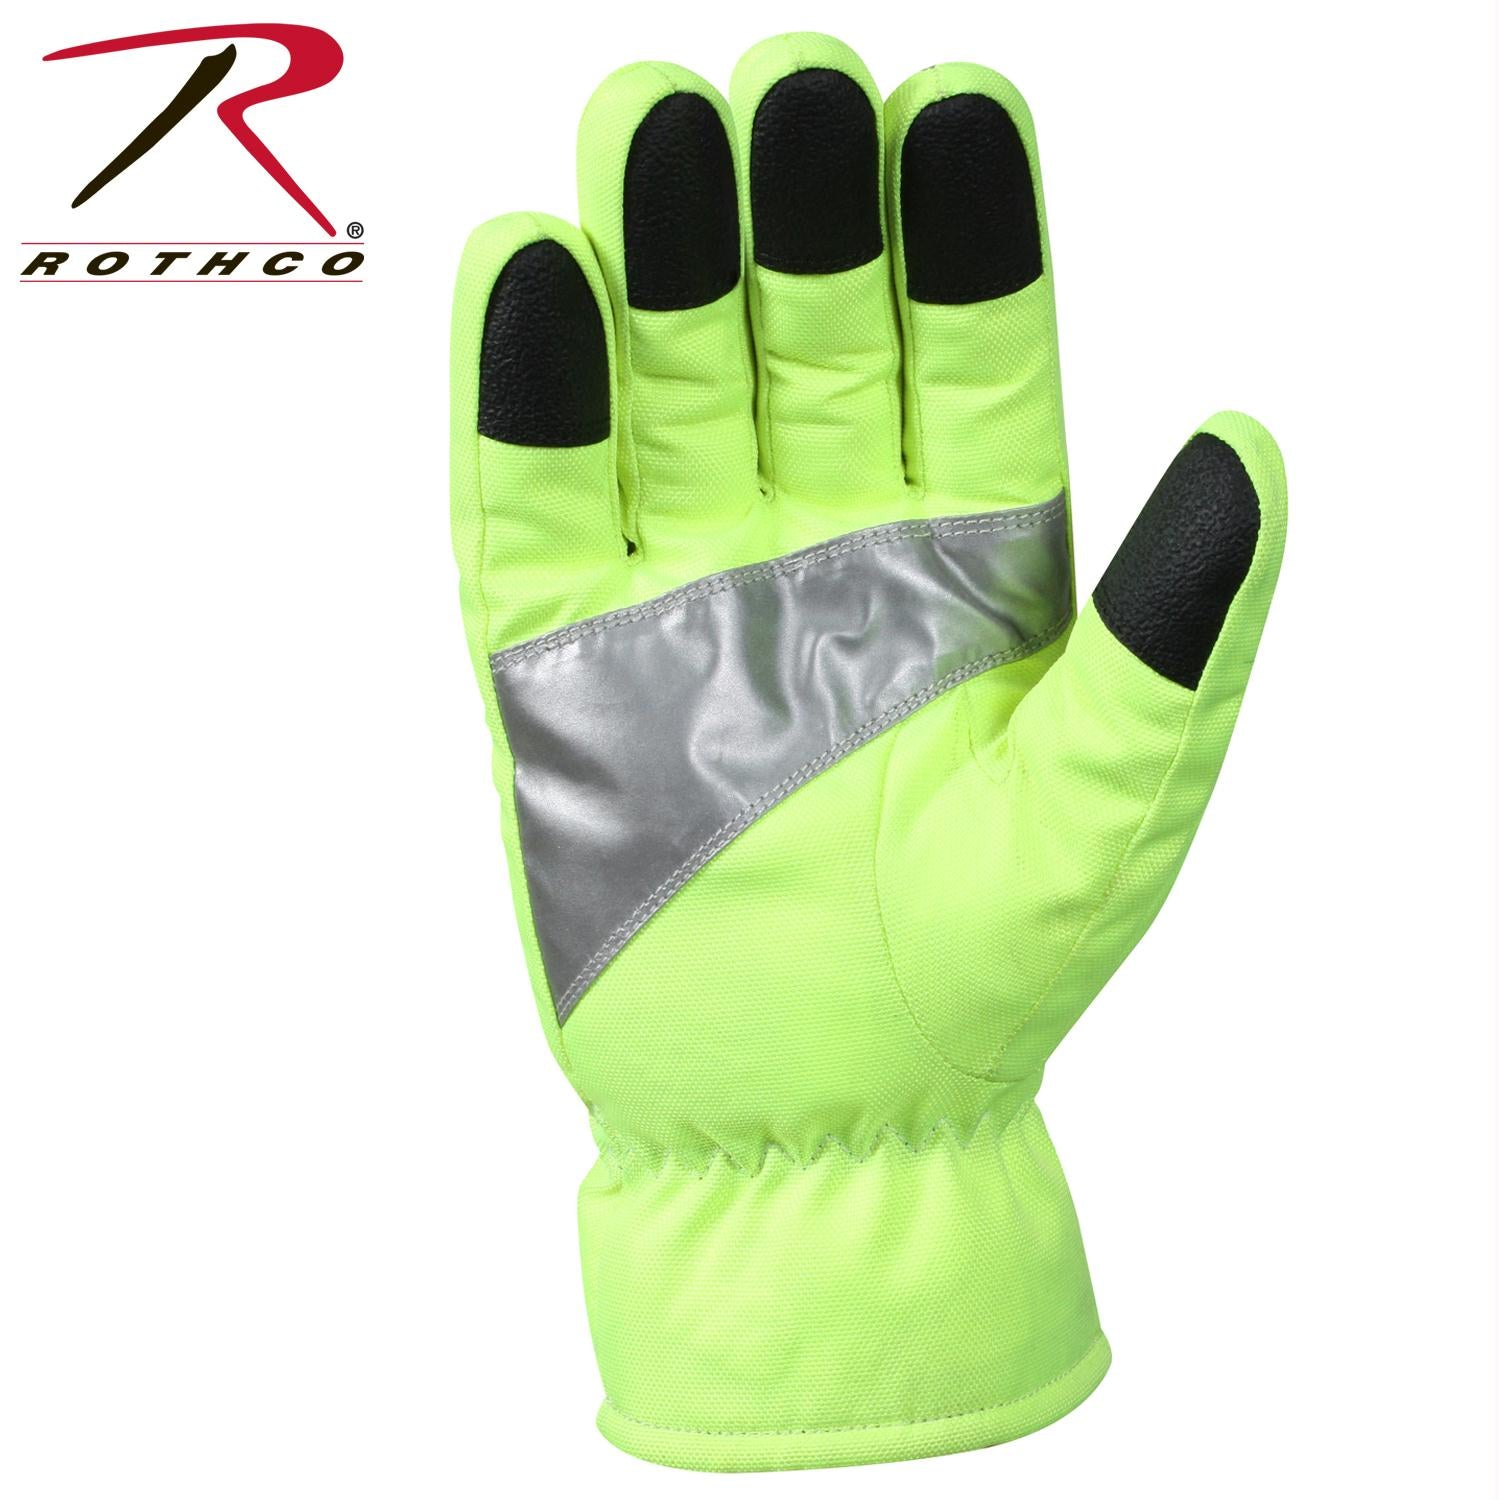 Rothco Safety Green Gloves With Reflective Tape - 2XL